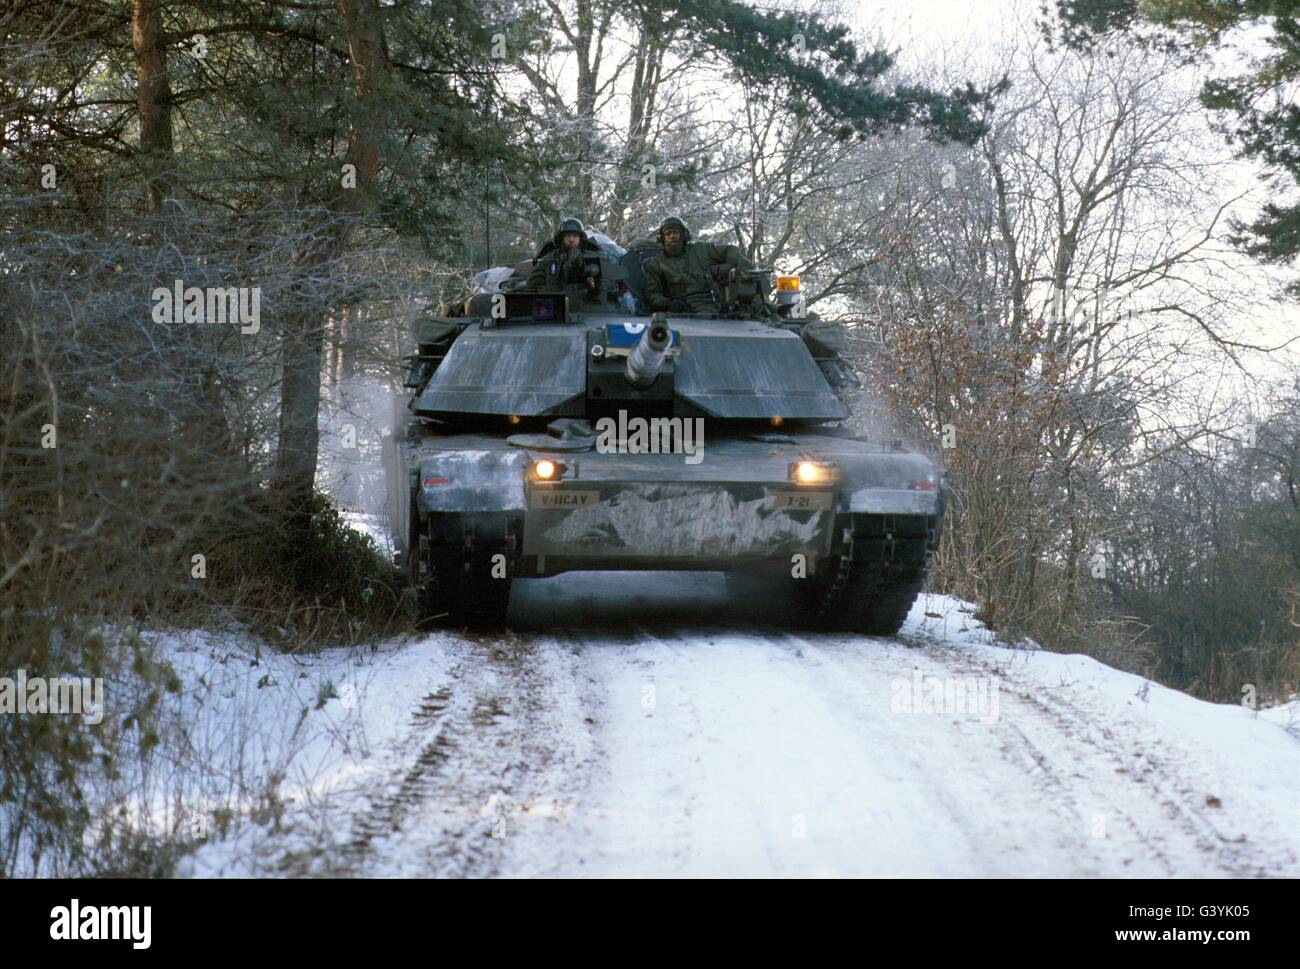 http://c7.alamy.com/comp/G3YK05/us-army-tanks-m-1-abram-during-nato-exercises-in-germany-G3YK05.jpg